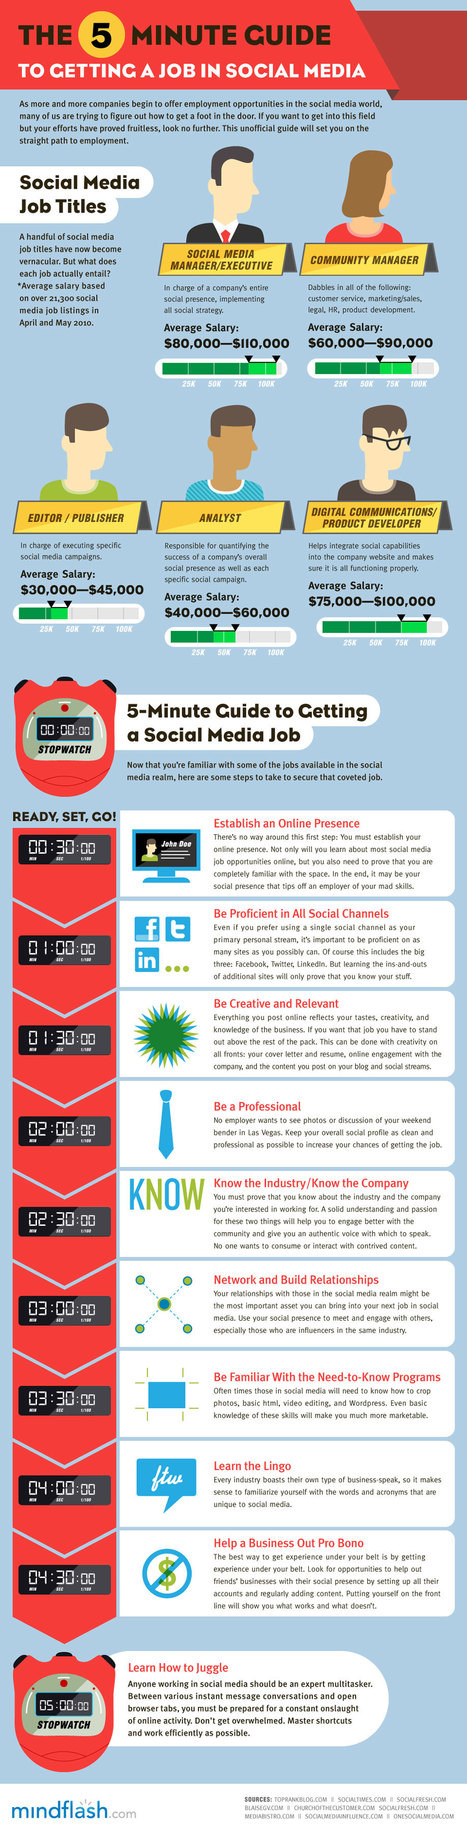 Infographic: The 5-minute guide to getting a Social Media job | EPIC Infographic | Scoop.it